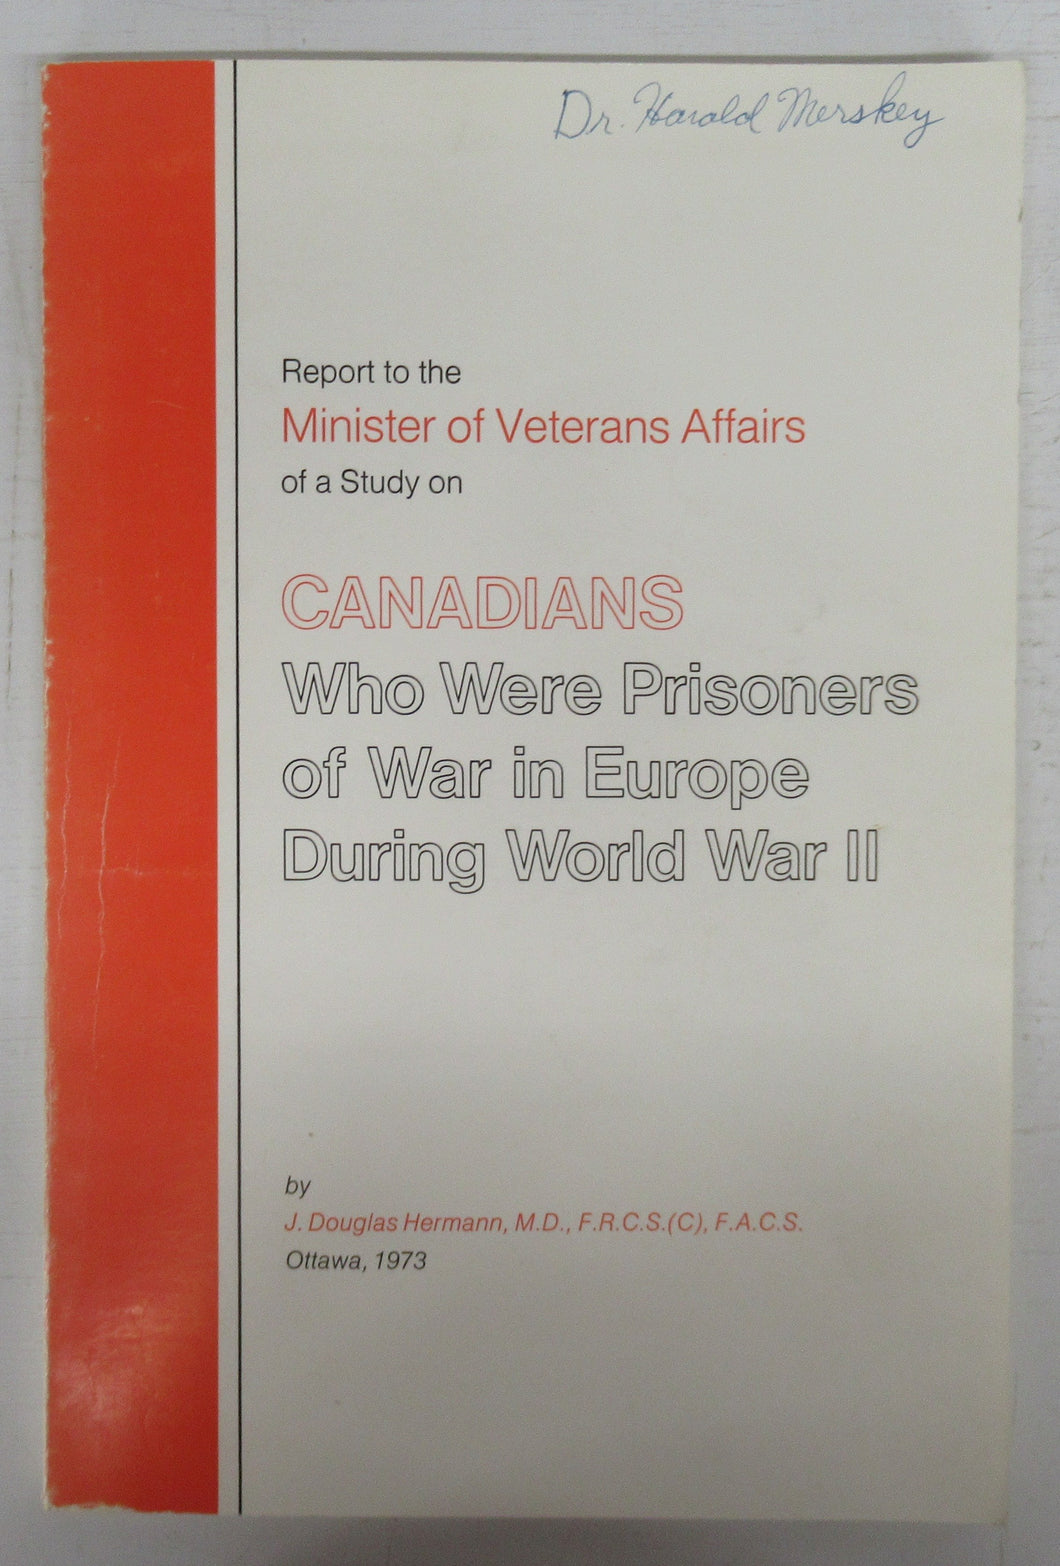 Report to the Minister of Veterans Affairs of a Study on Canadians Who Were Prisoners of War in Europe During World War II